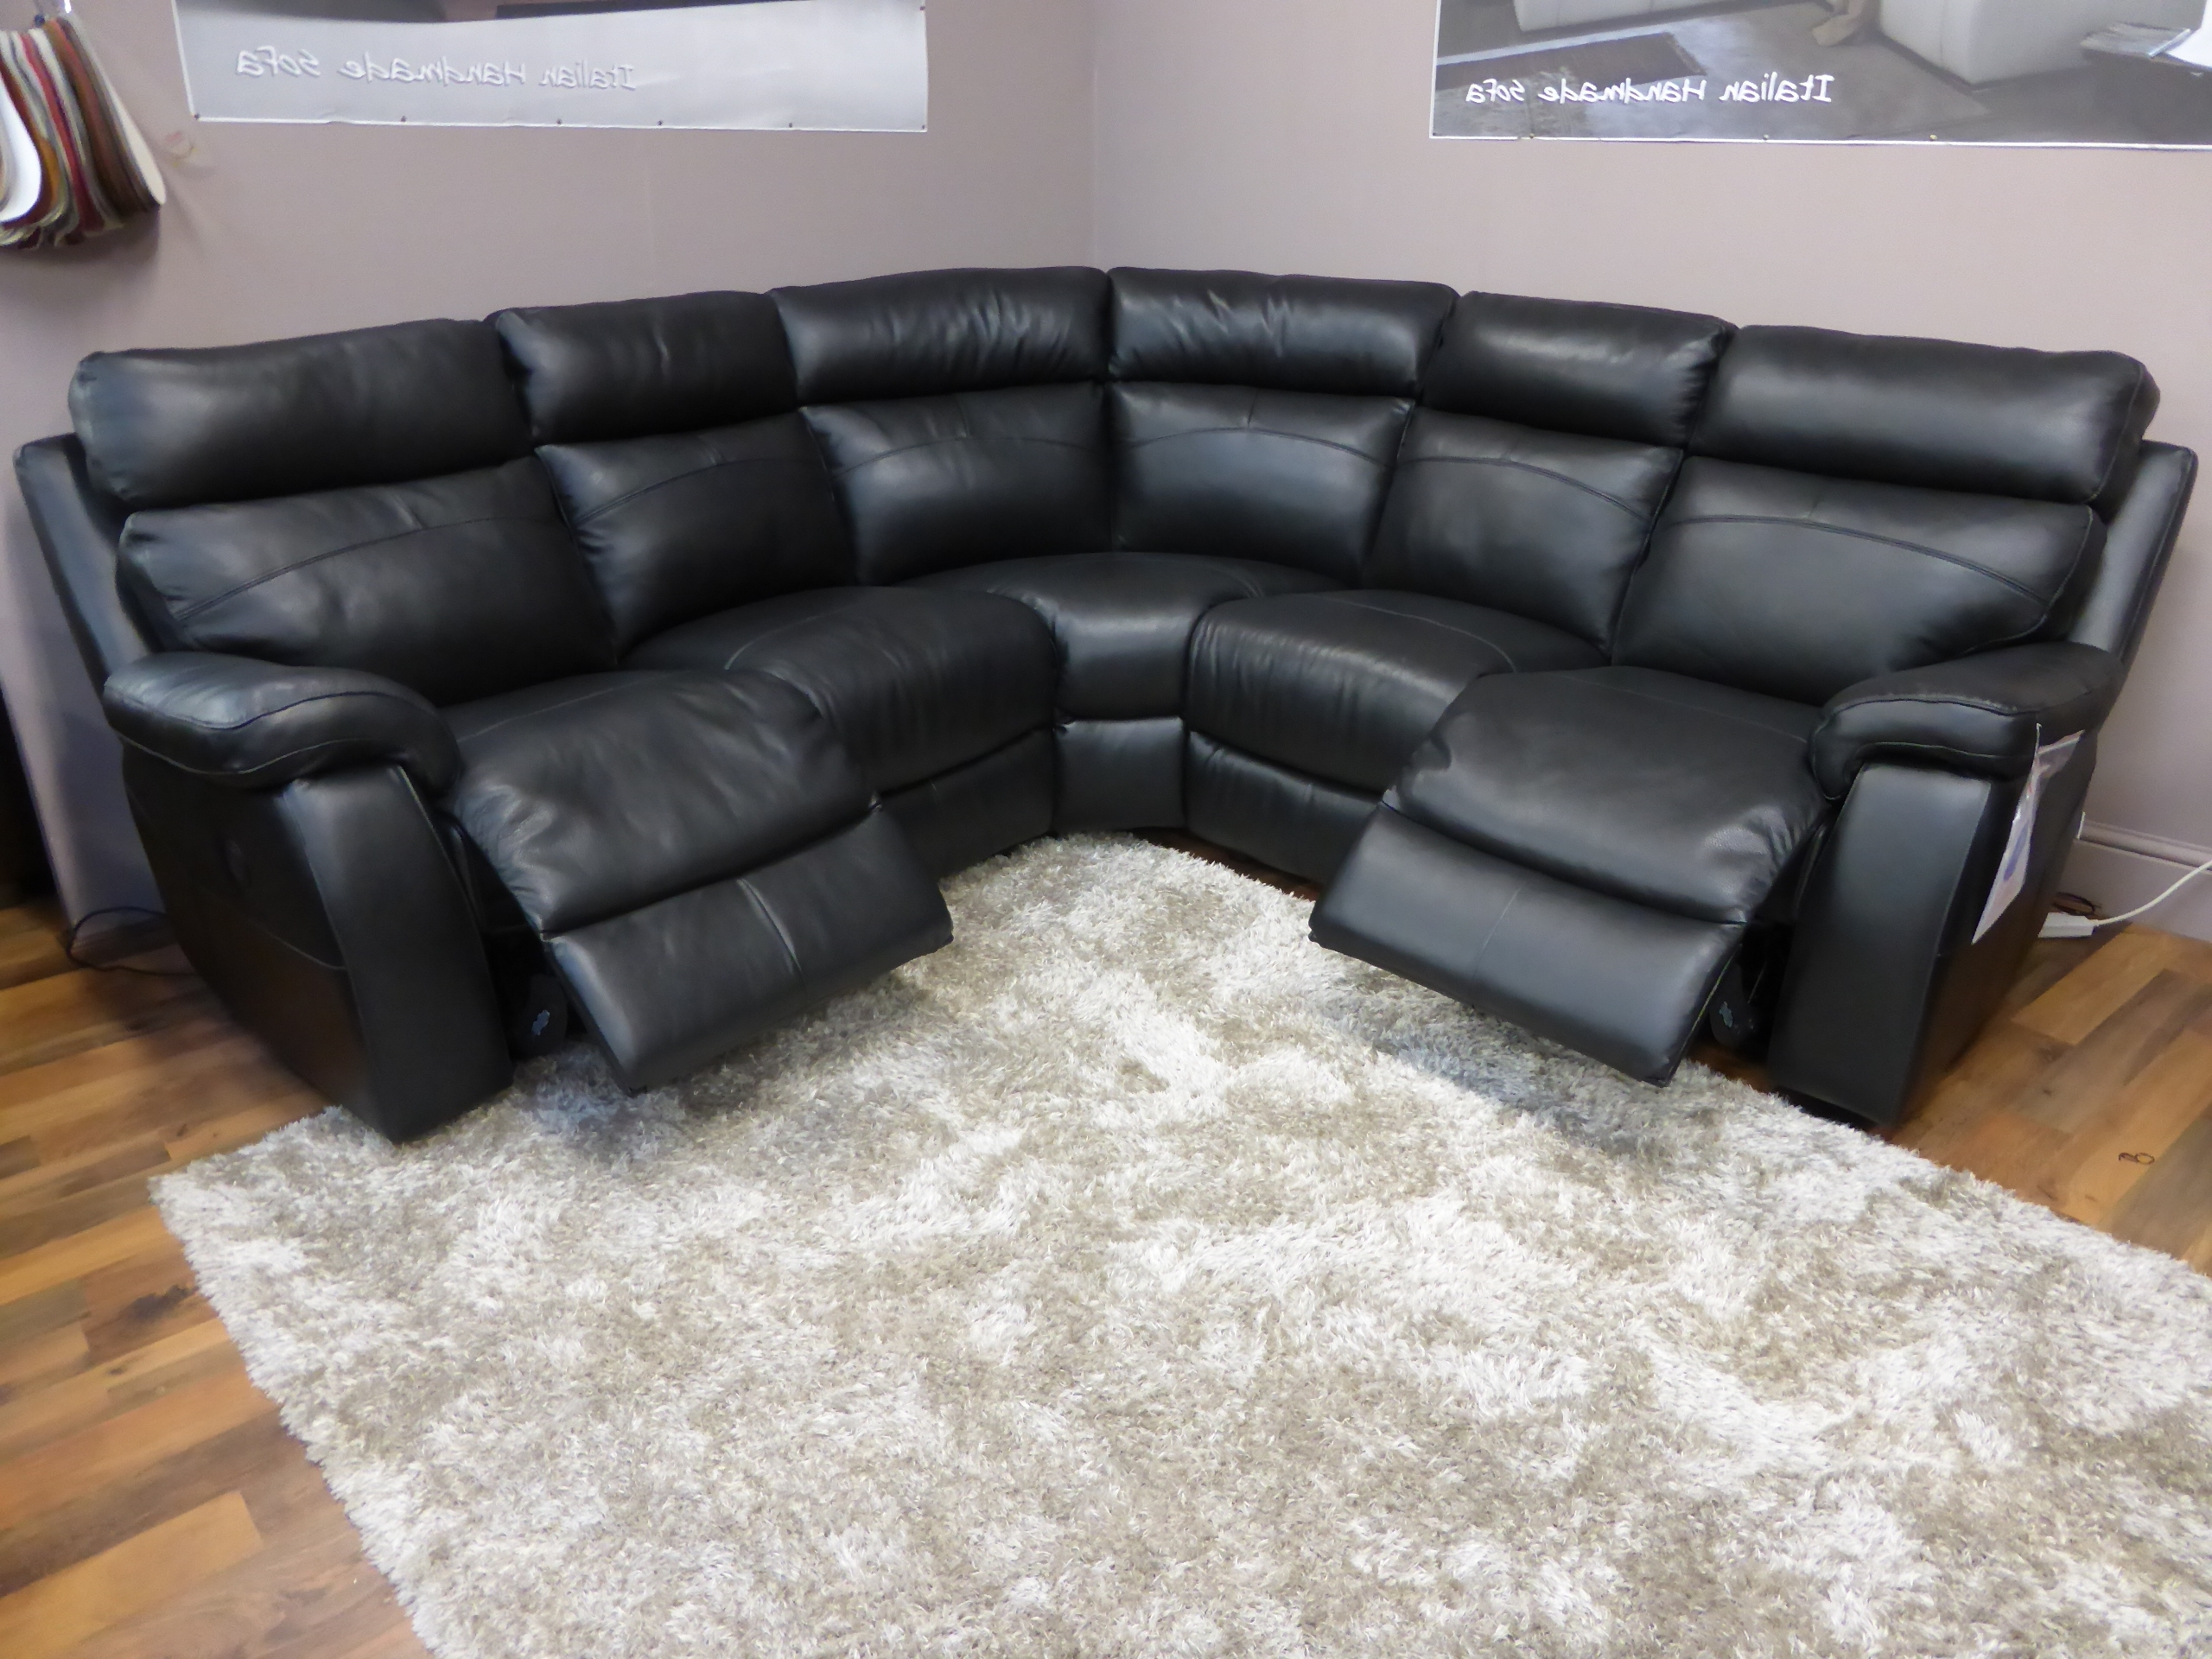 Lazy Boy Regarding Latest Lazyboy Sectional Sofas (View 18 of 20)